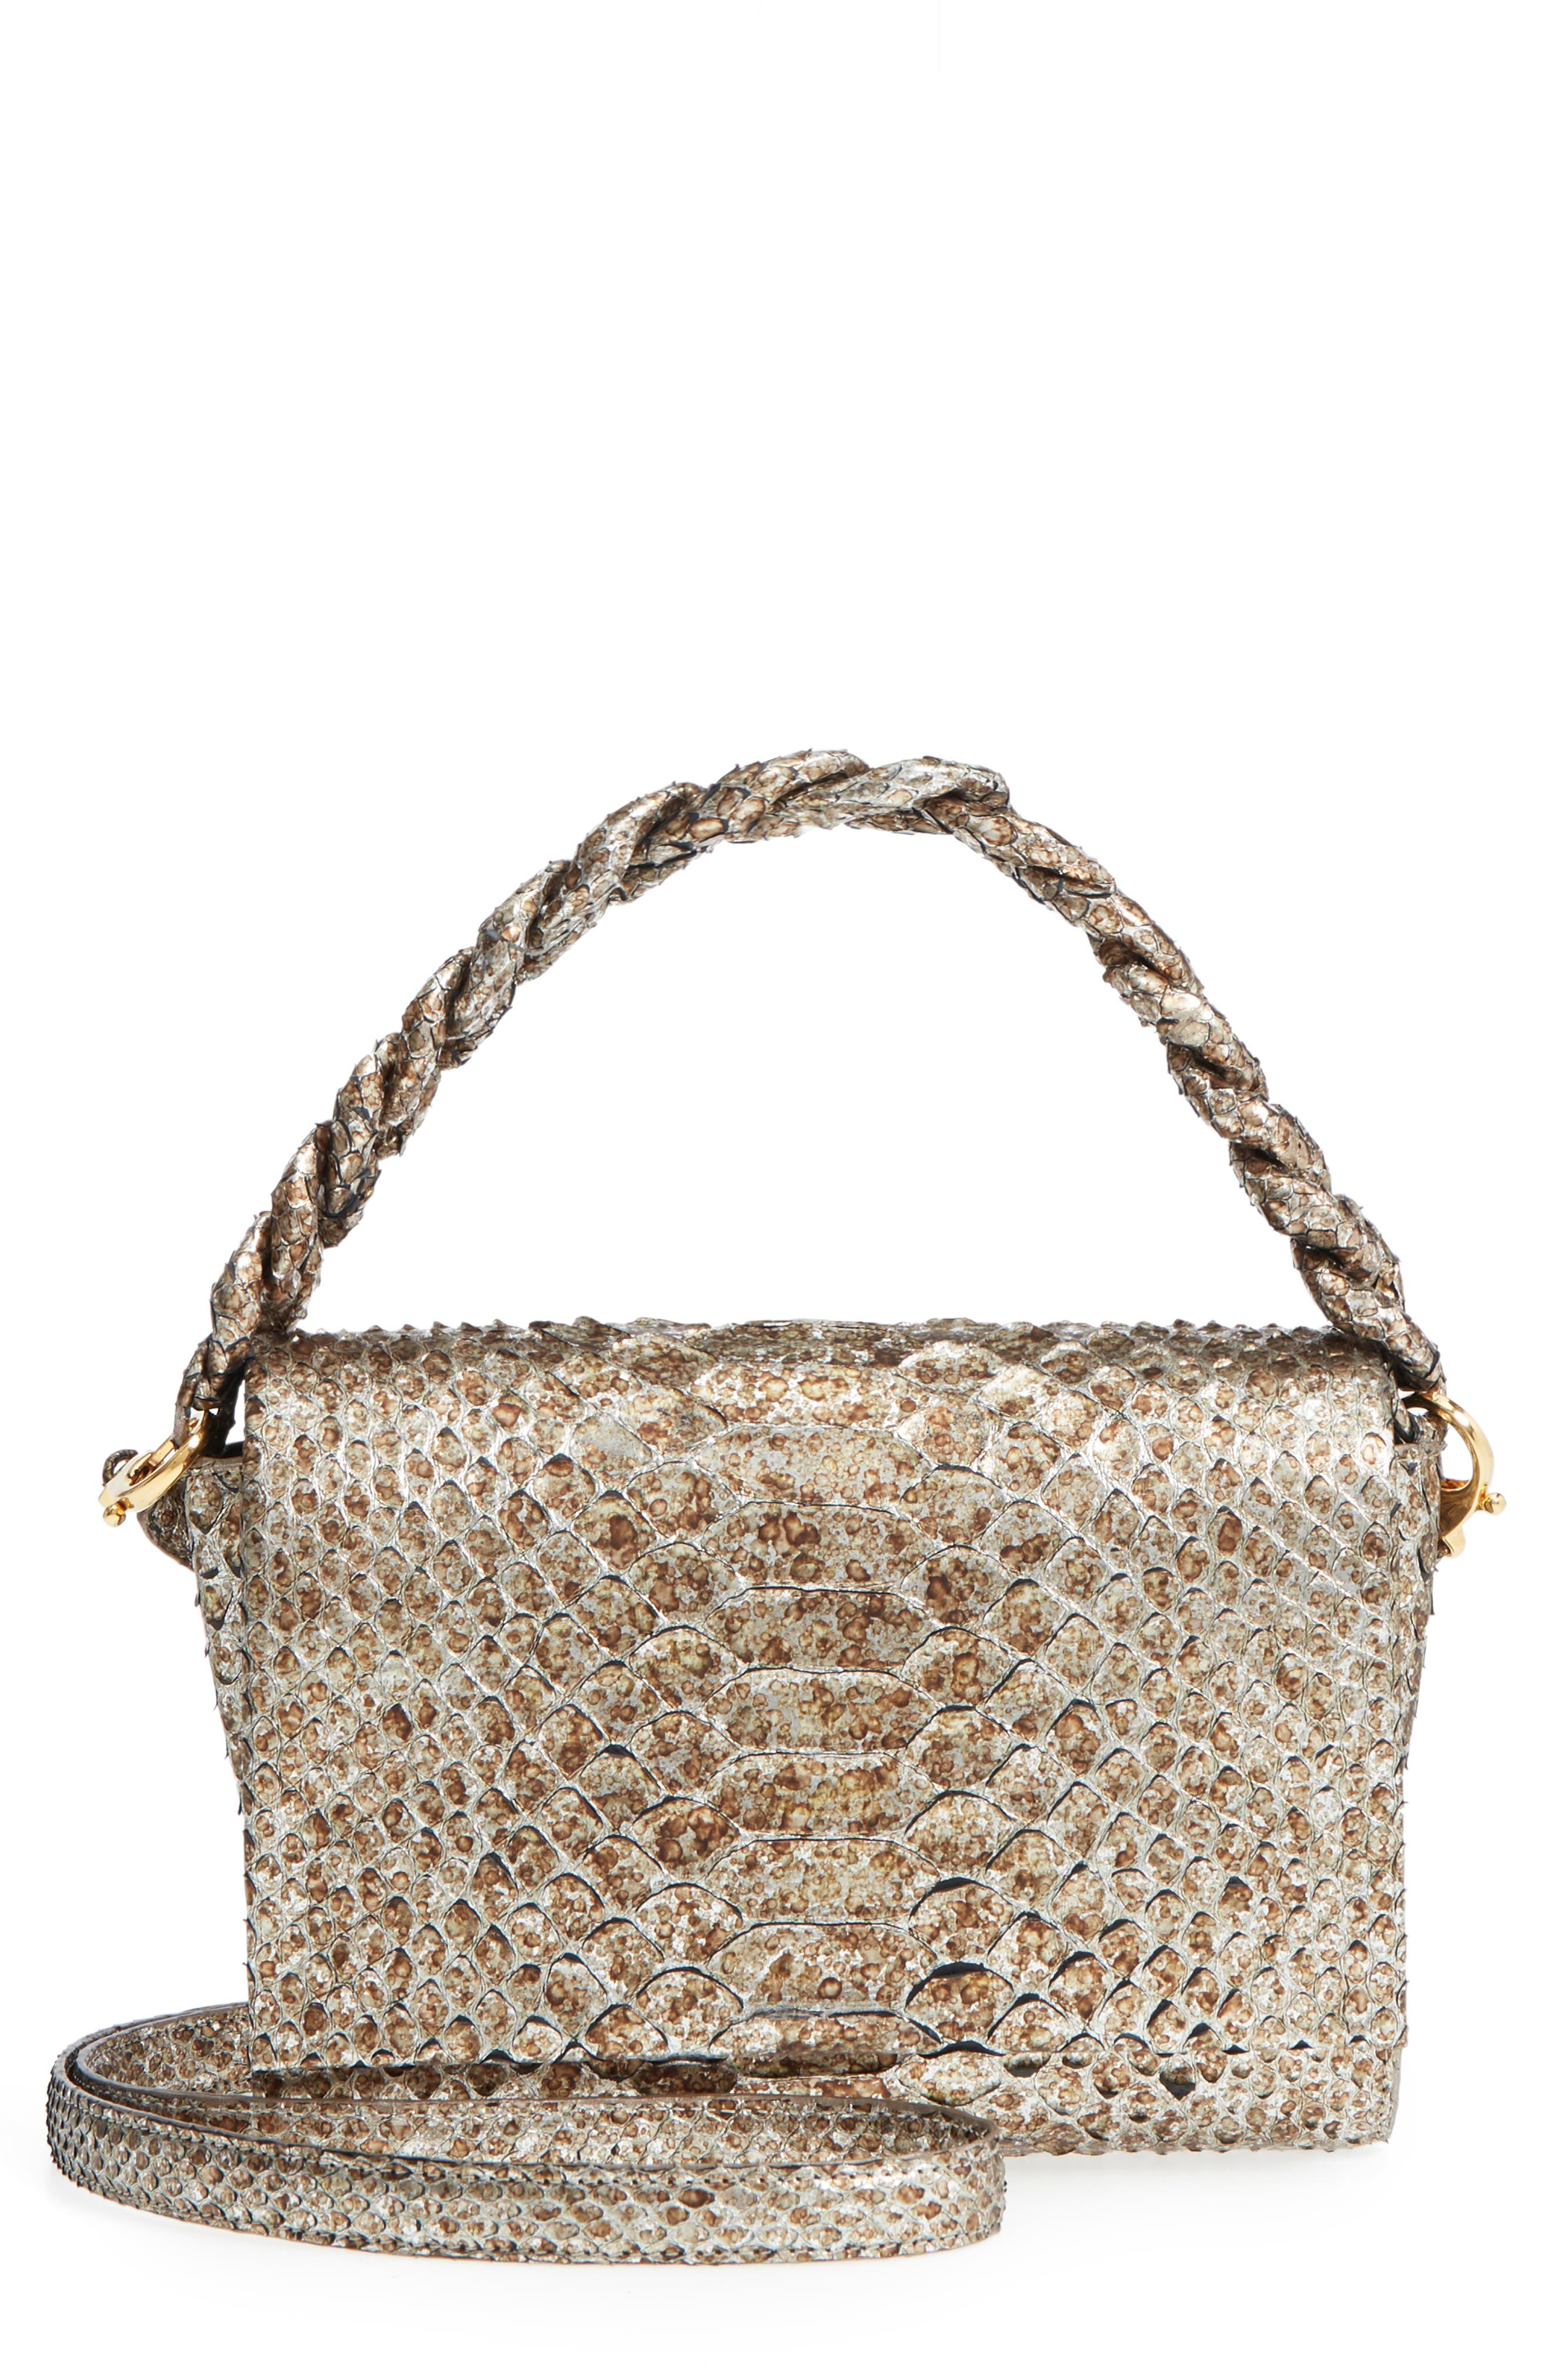 Small Carrie Genuine Crocodile Metallic Clutch,                             Main thumbnail 1, color,                             Metallic Gold